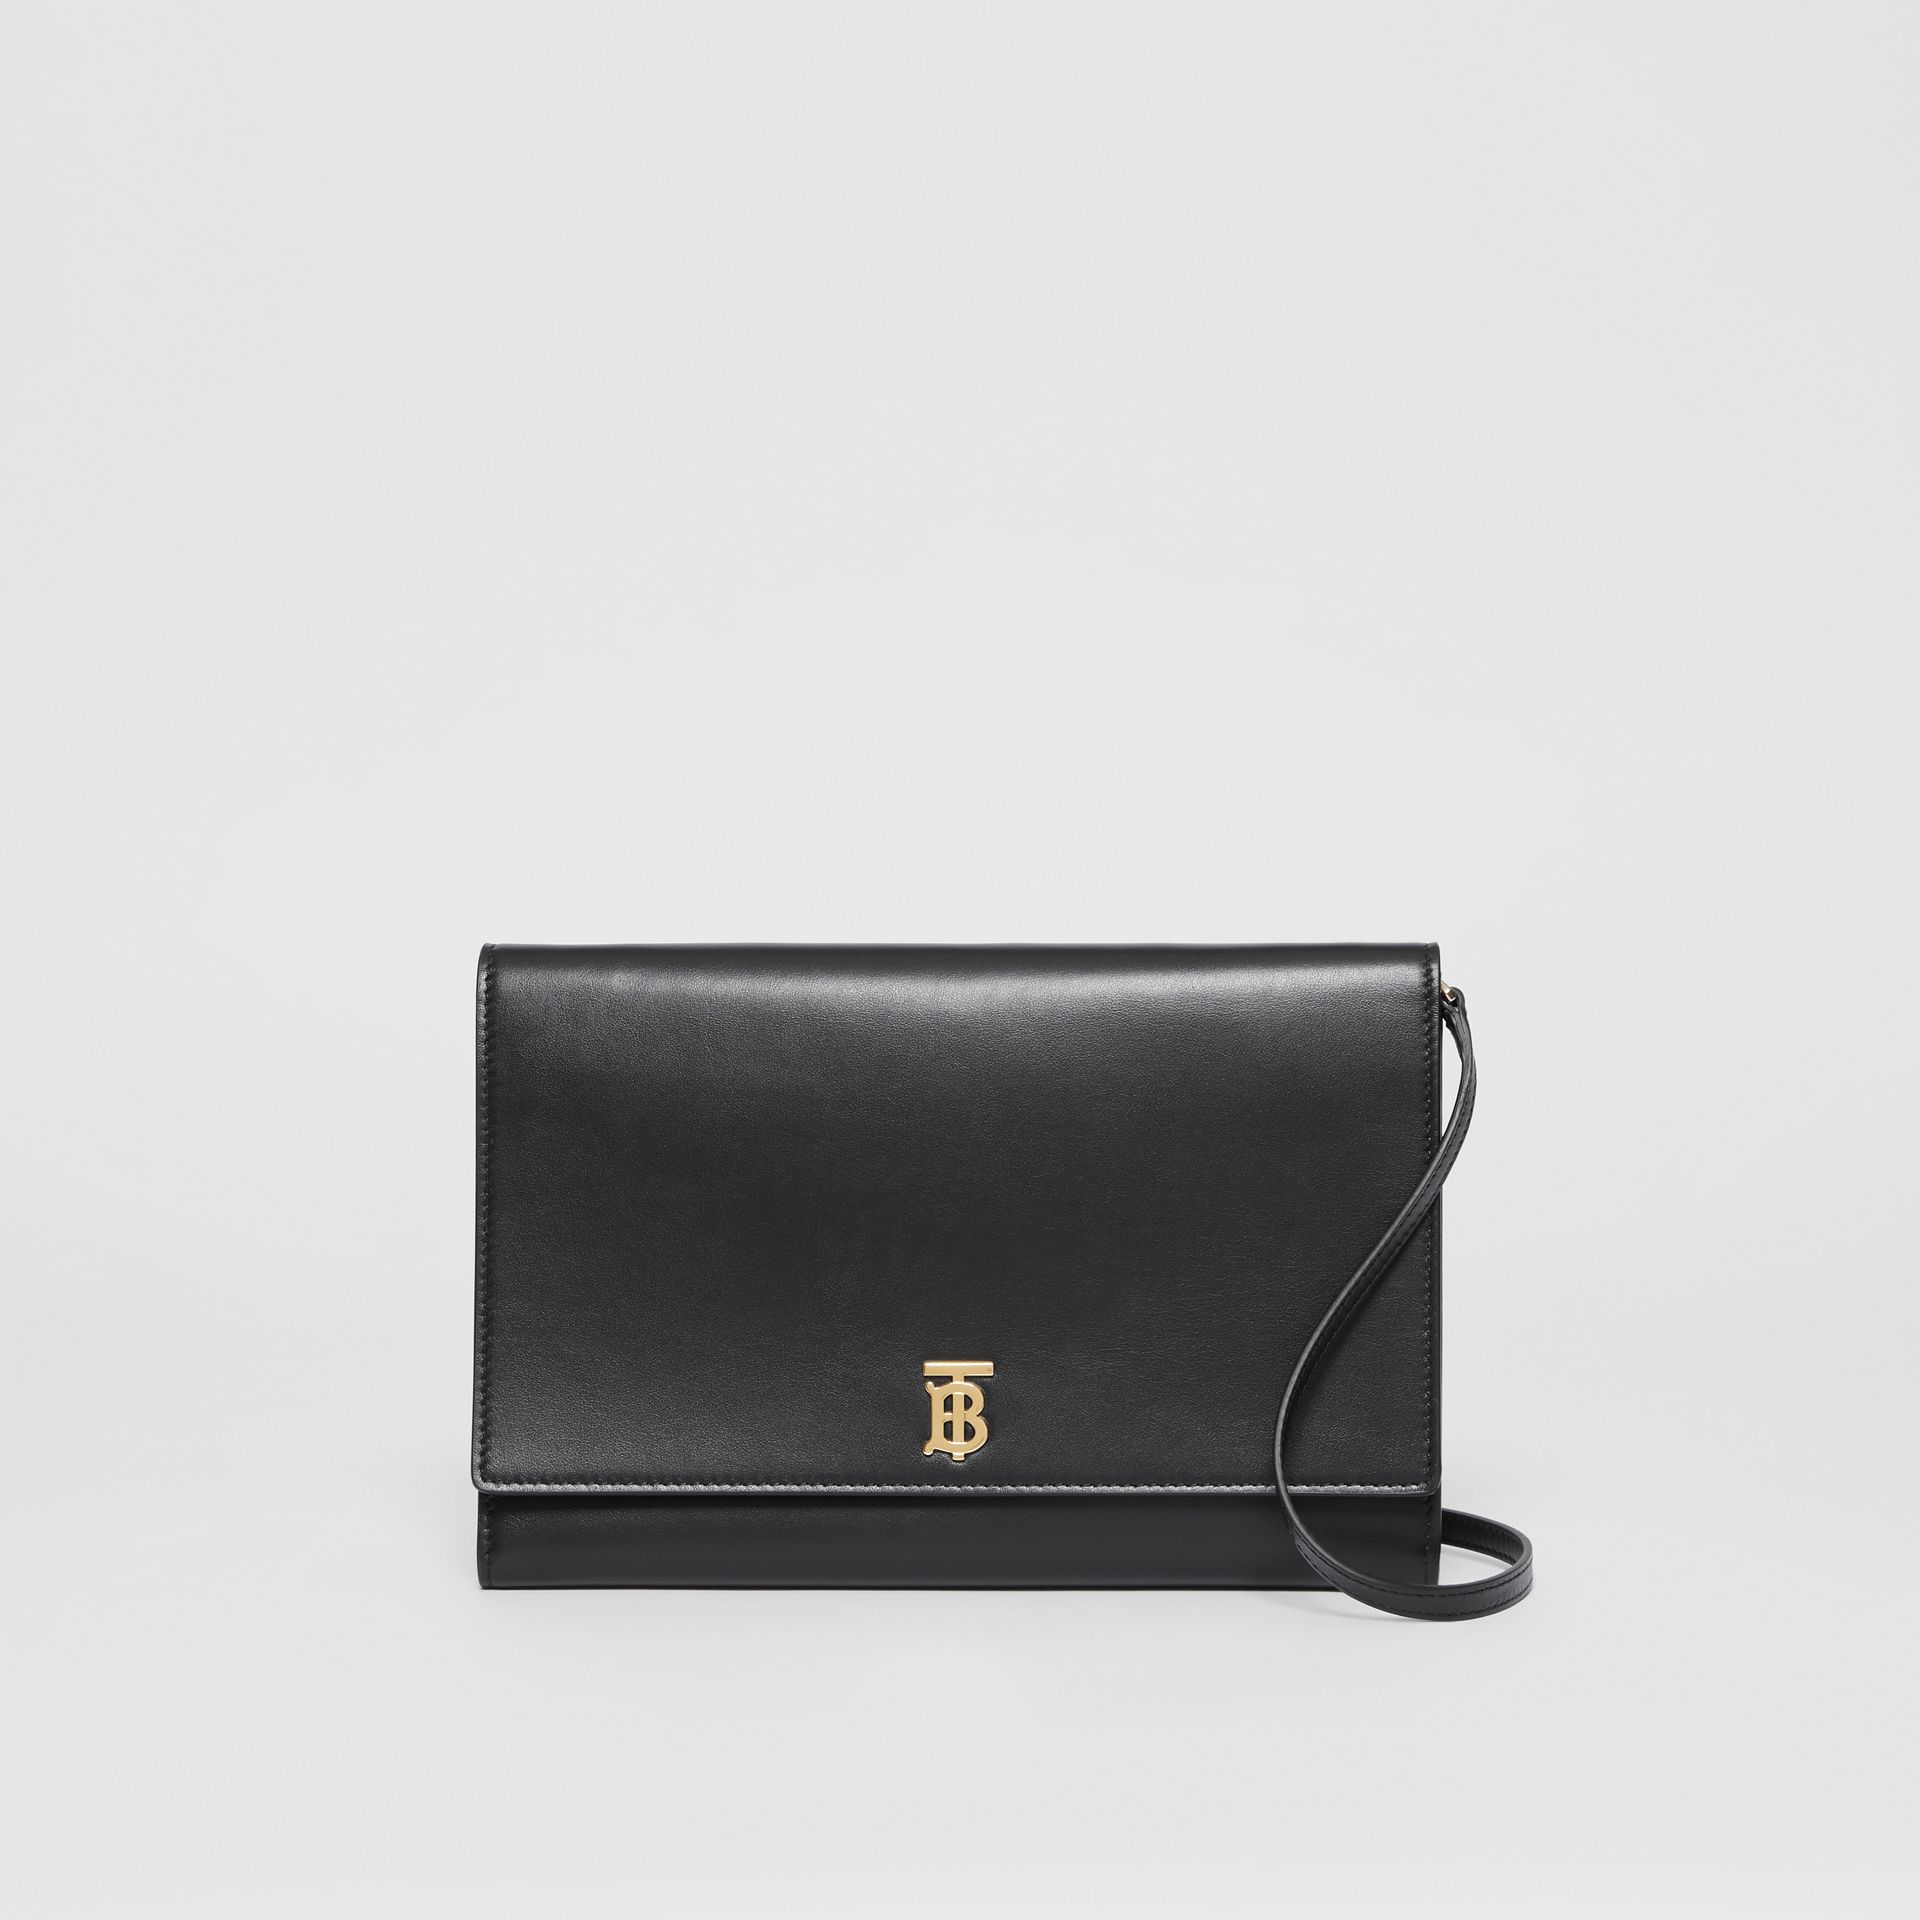 Monogram Motif Leather Bag with Detachable Strap in Black - Women | Burberry Australia - gallery image 0